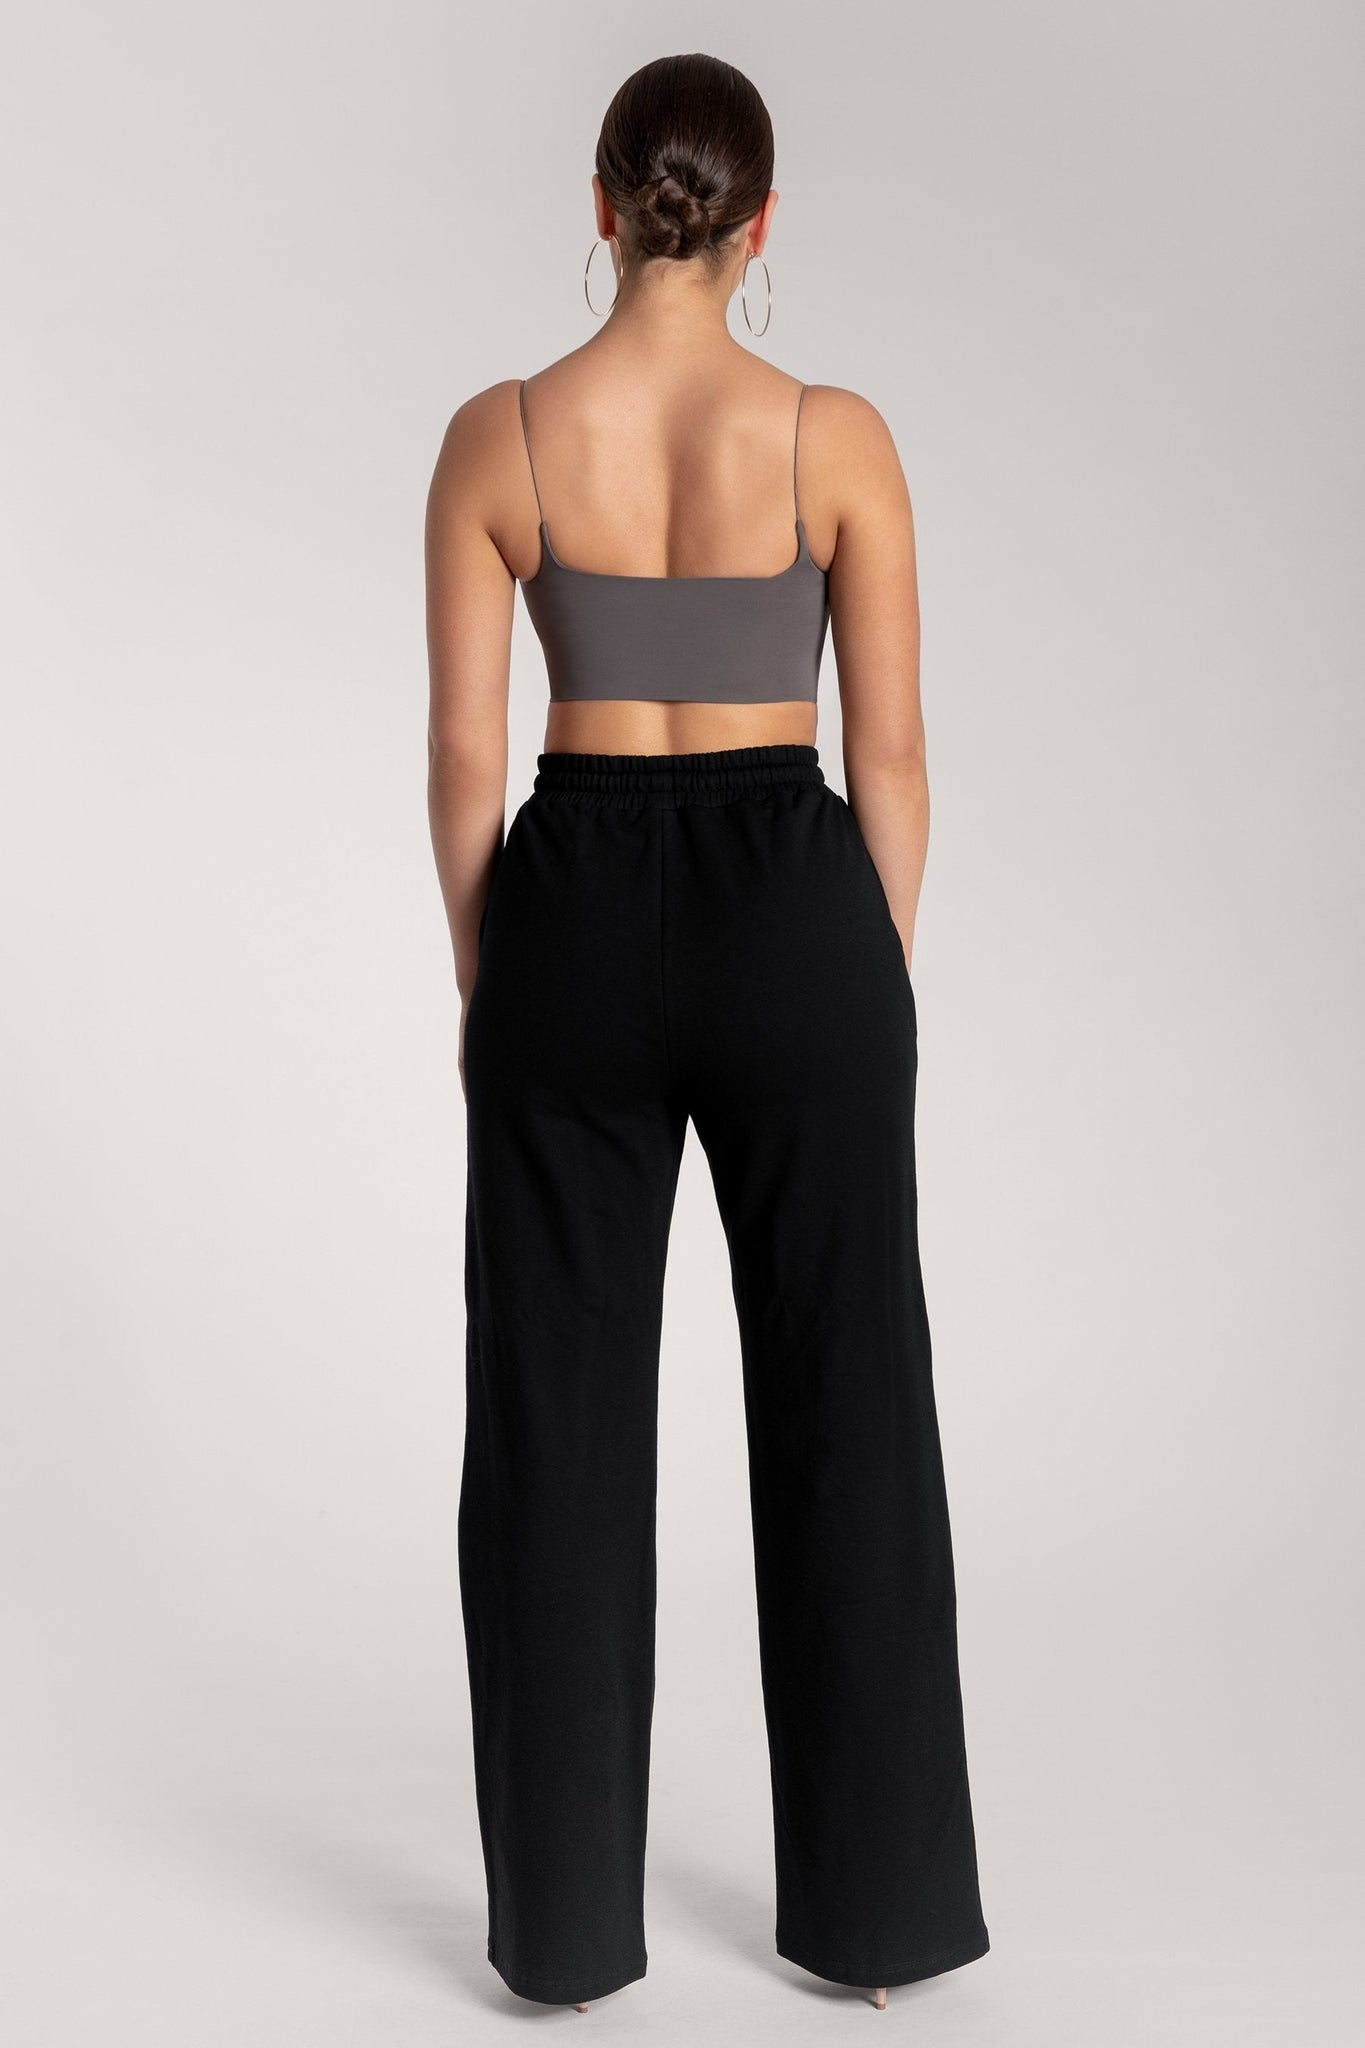 Kaiya Thin Strap Scoop Neck Crop Top - Charcoal - MESHKI